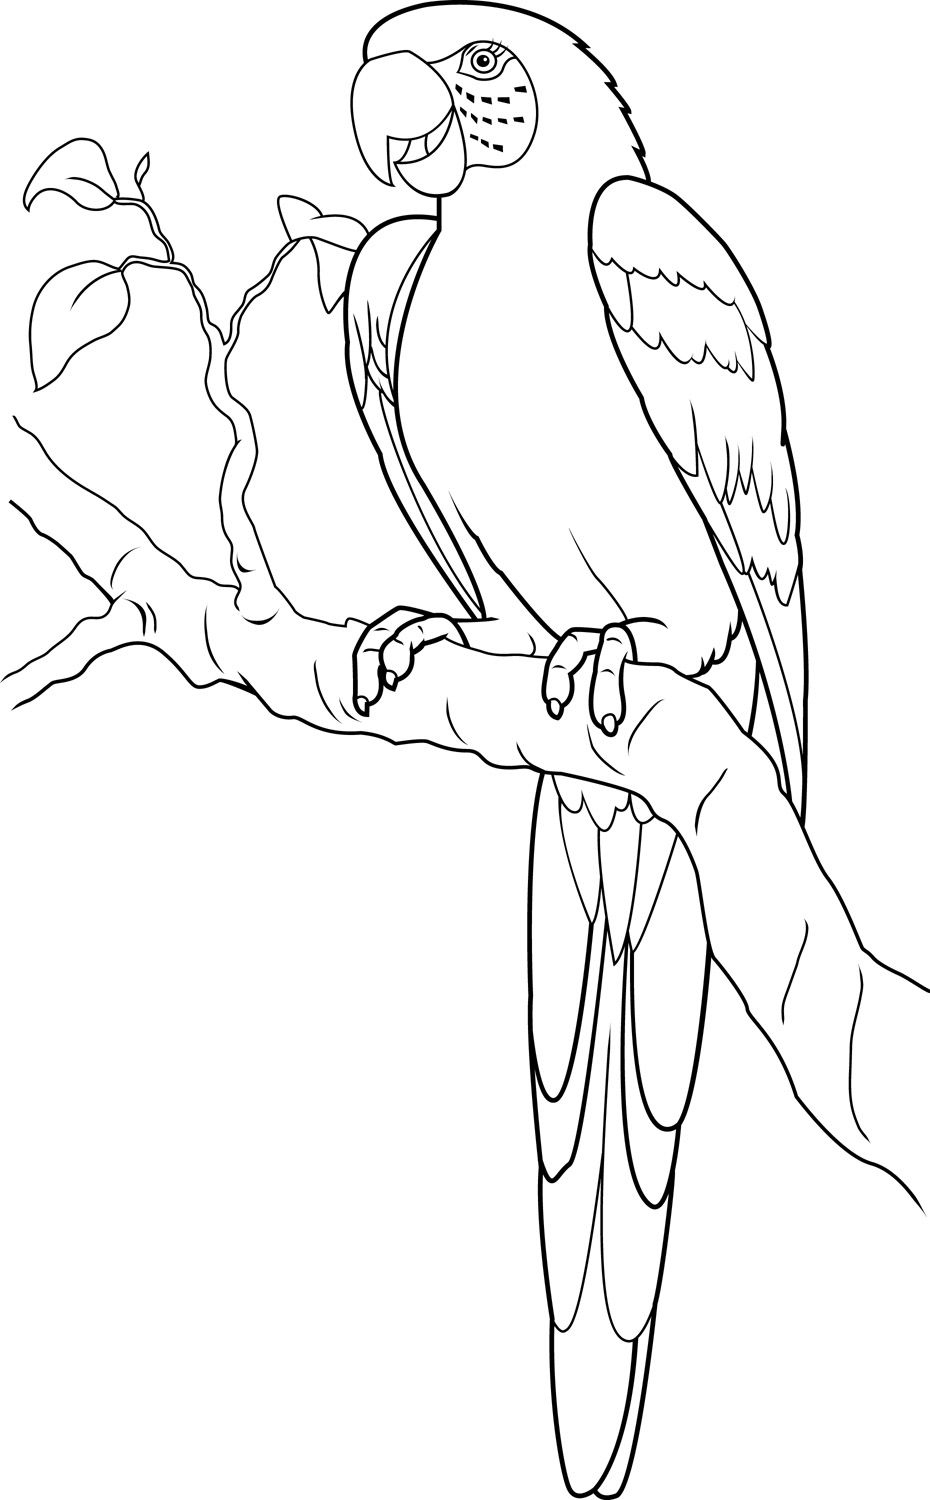 Macaw - Google Search | Dessin Perroquet, Coloriage tout Perroquet Coloriage A Imprimer